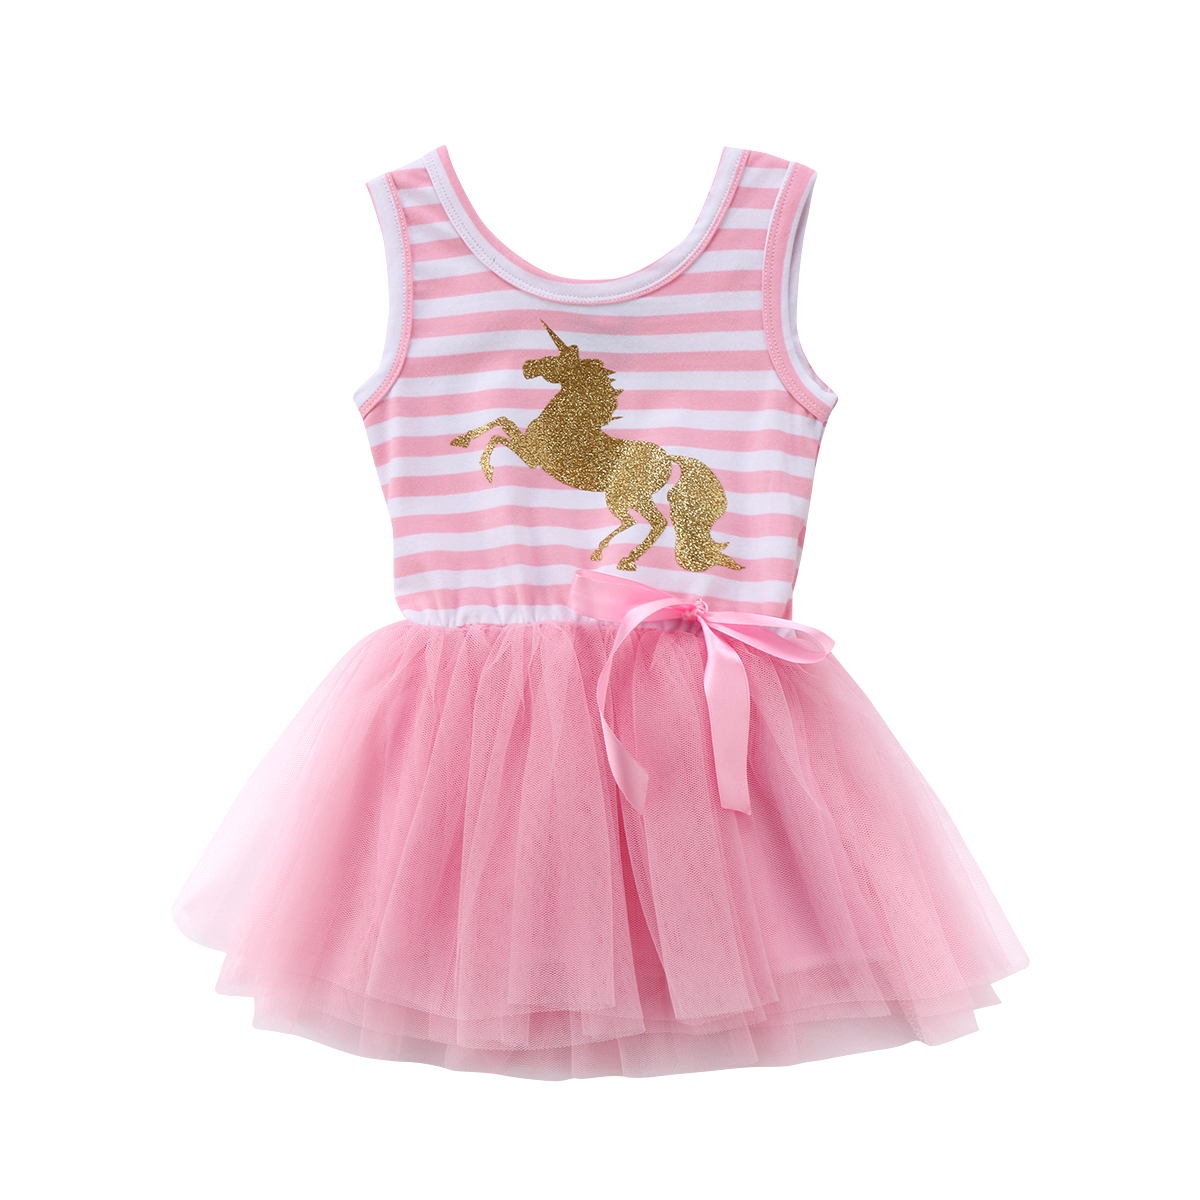 Baby Dresses Unicorn Wedding-Tutu Tulle Party Striped Sleeveless